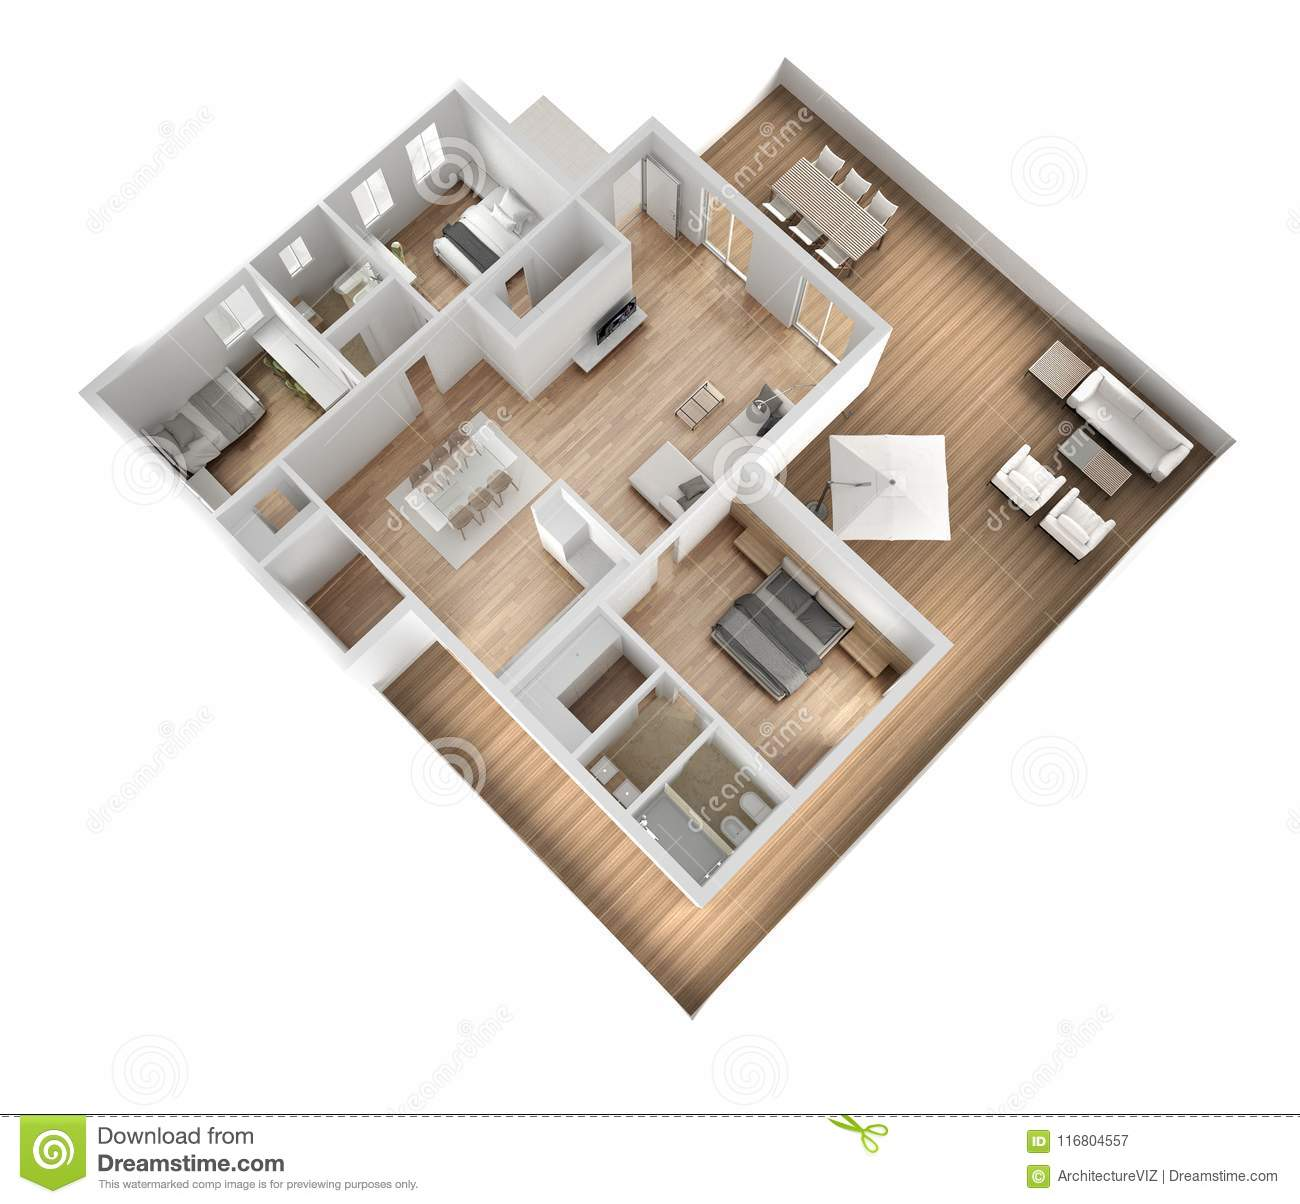 Apartment flat top view, furniture and decors, plan, cross section interior design, architect designer concept idea, white backgro